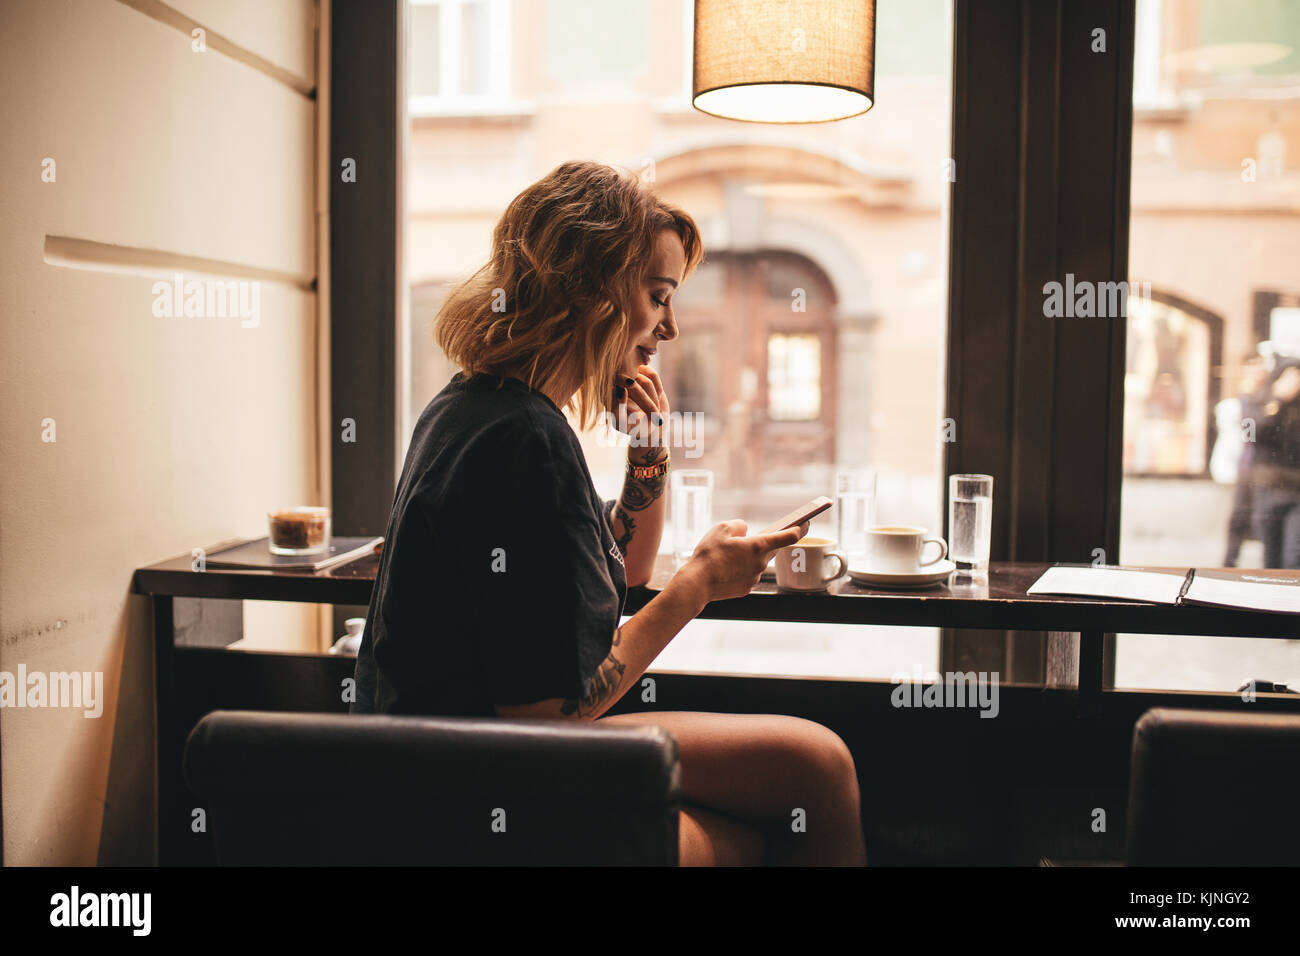 Cute girl texting on her cell phone in a bar - Stock Image